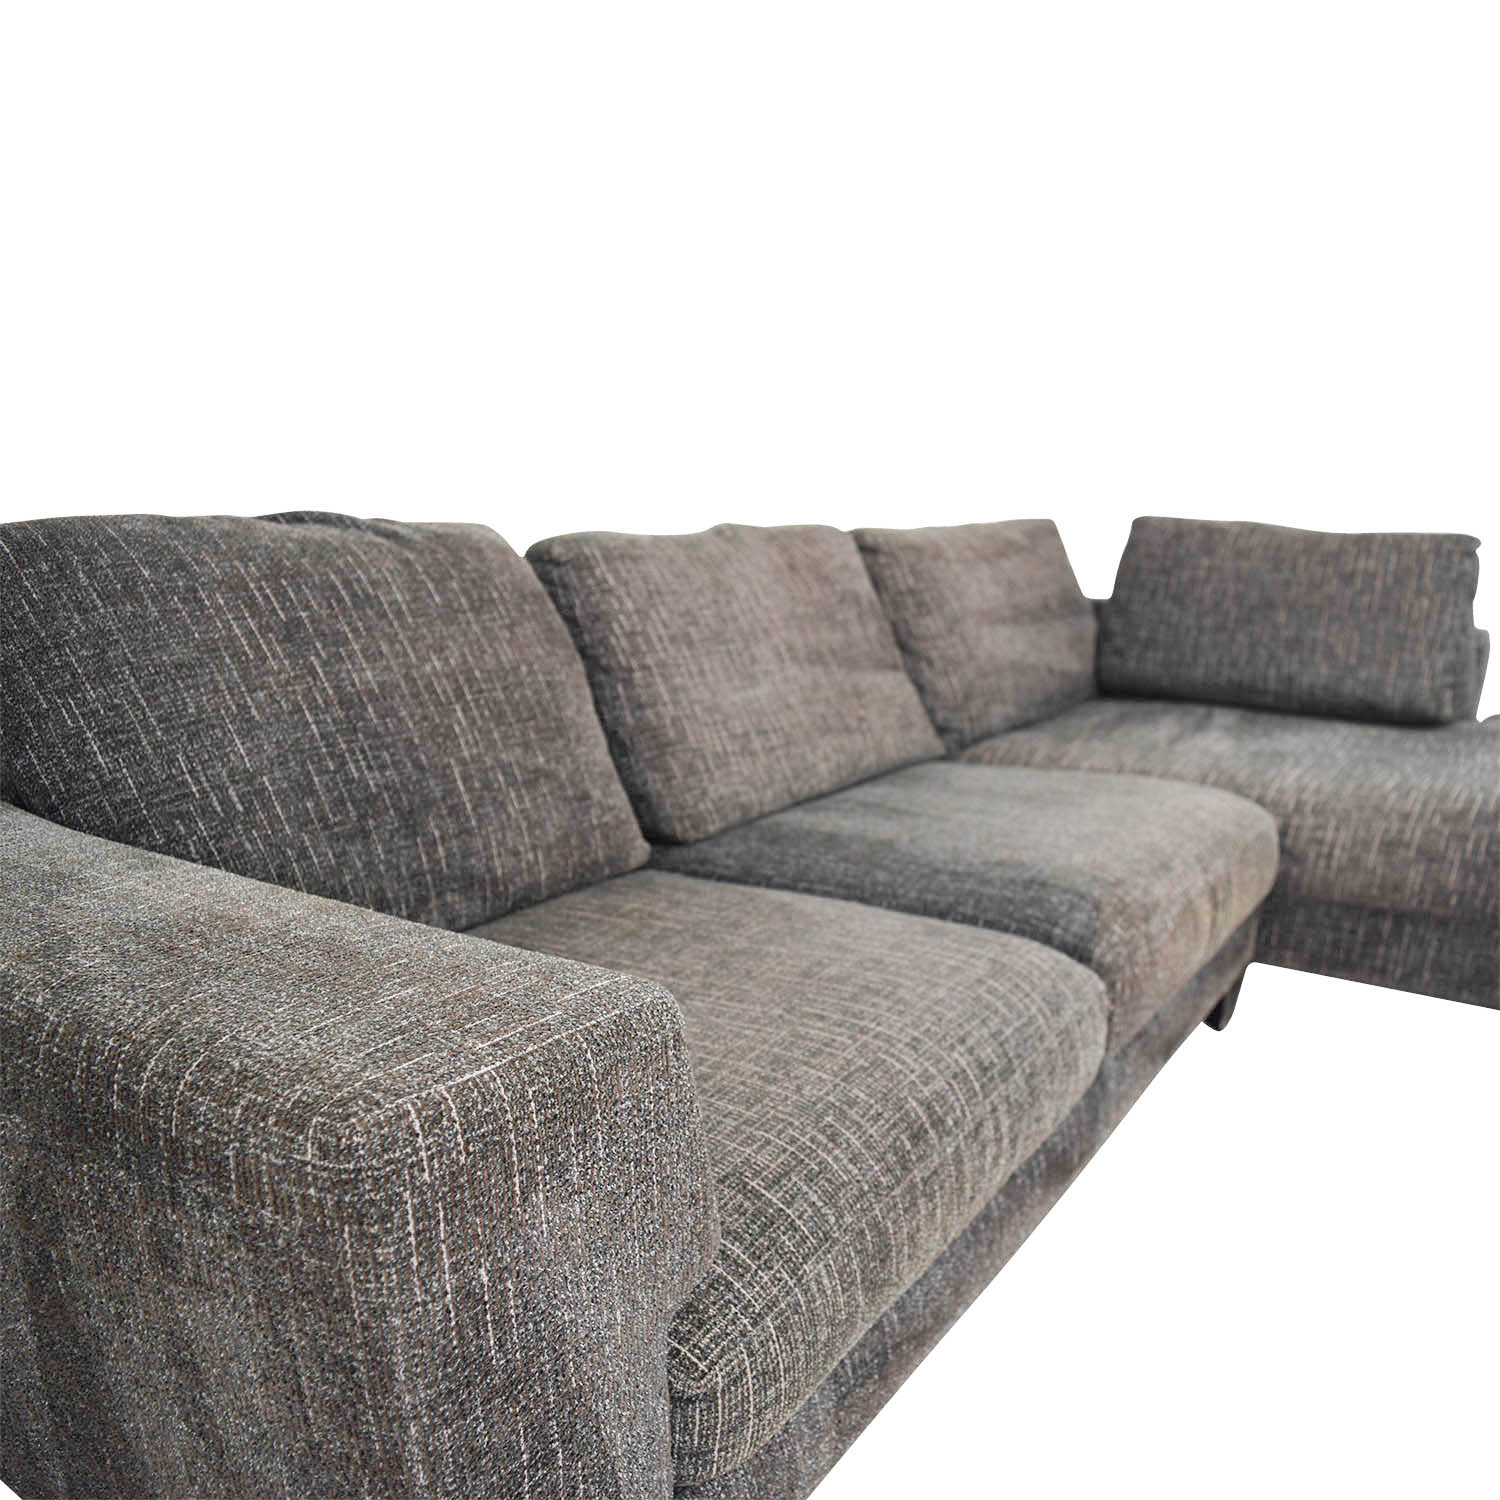 Super Brown Tweed Sectional Sofa Home The Honoroak Gamerscity Chair Design For Home Gamerscityorg